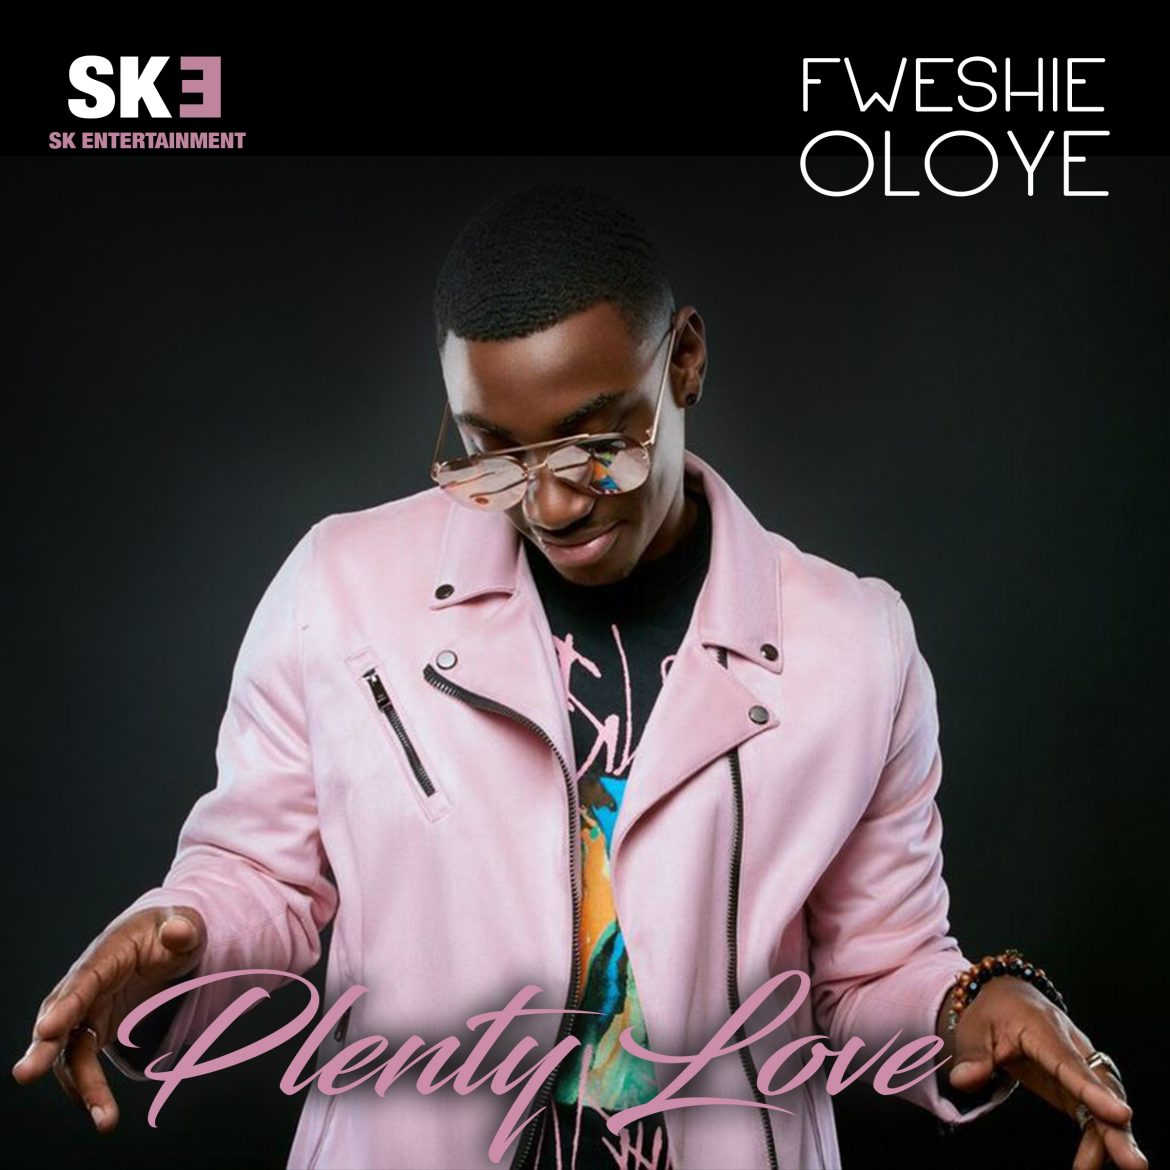 Fweshie Oloye - Plenty Love